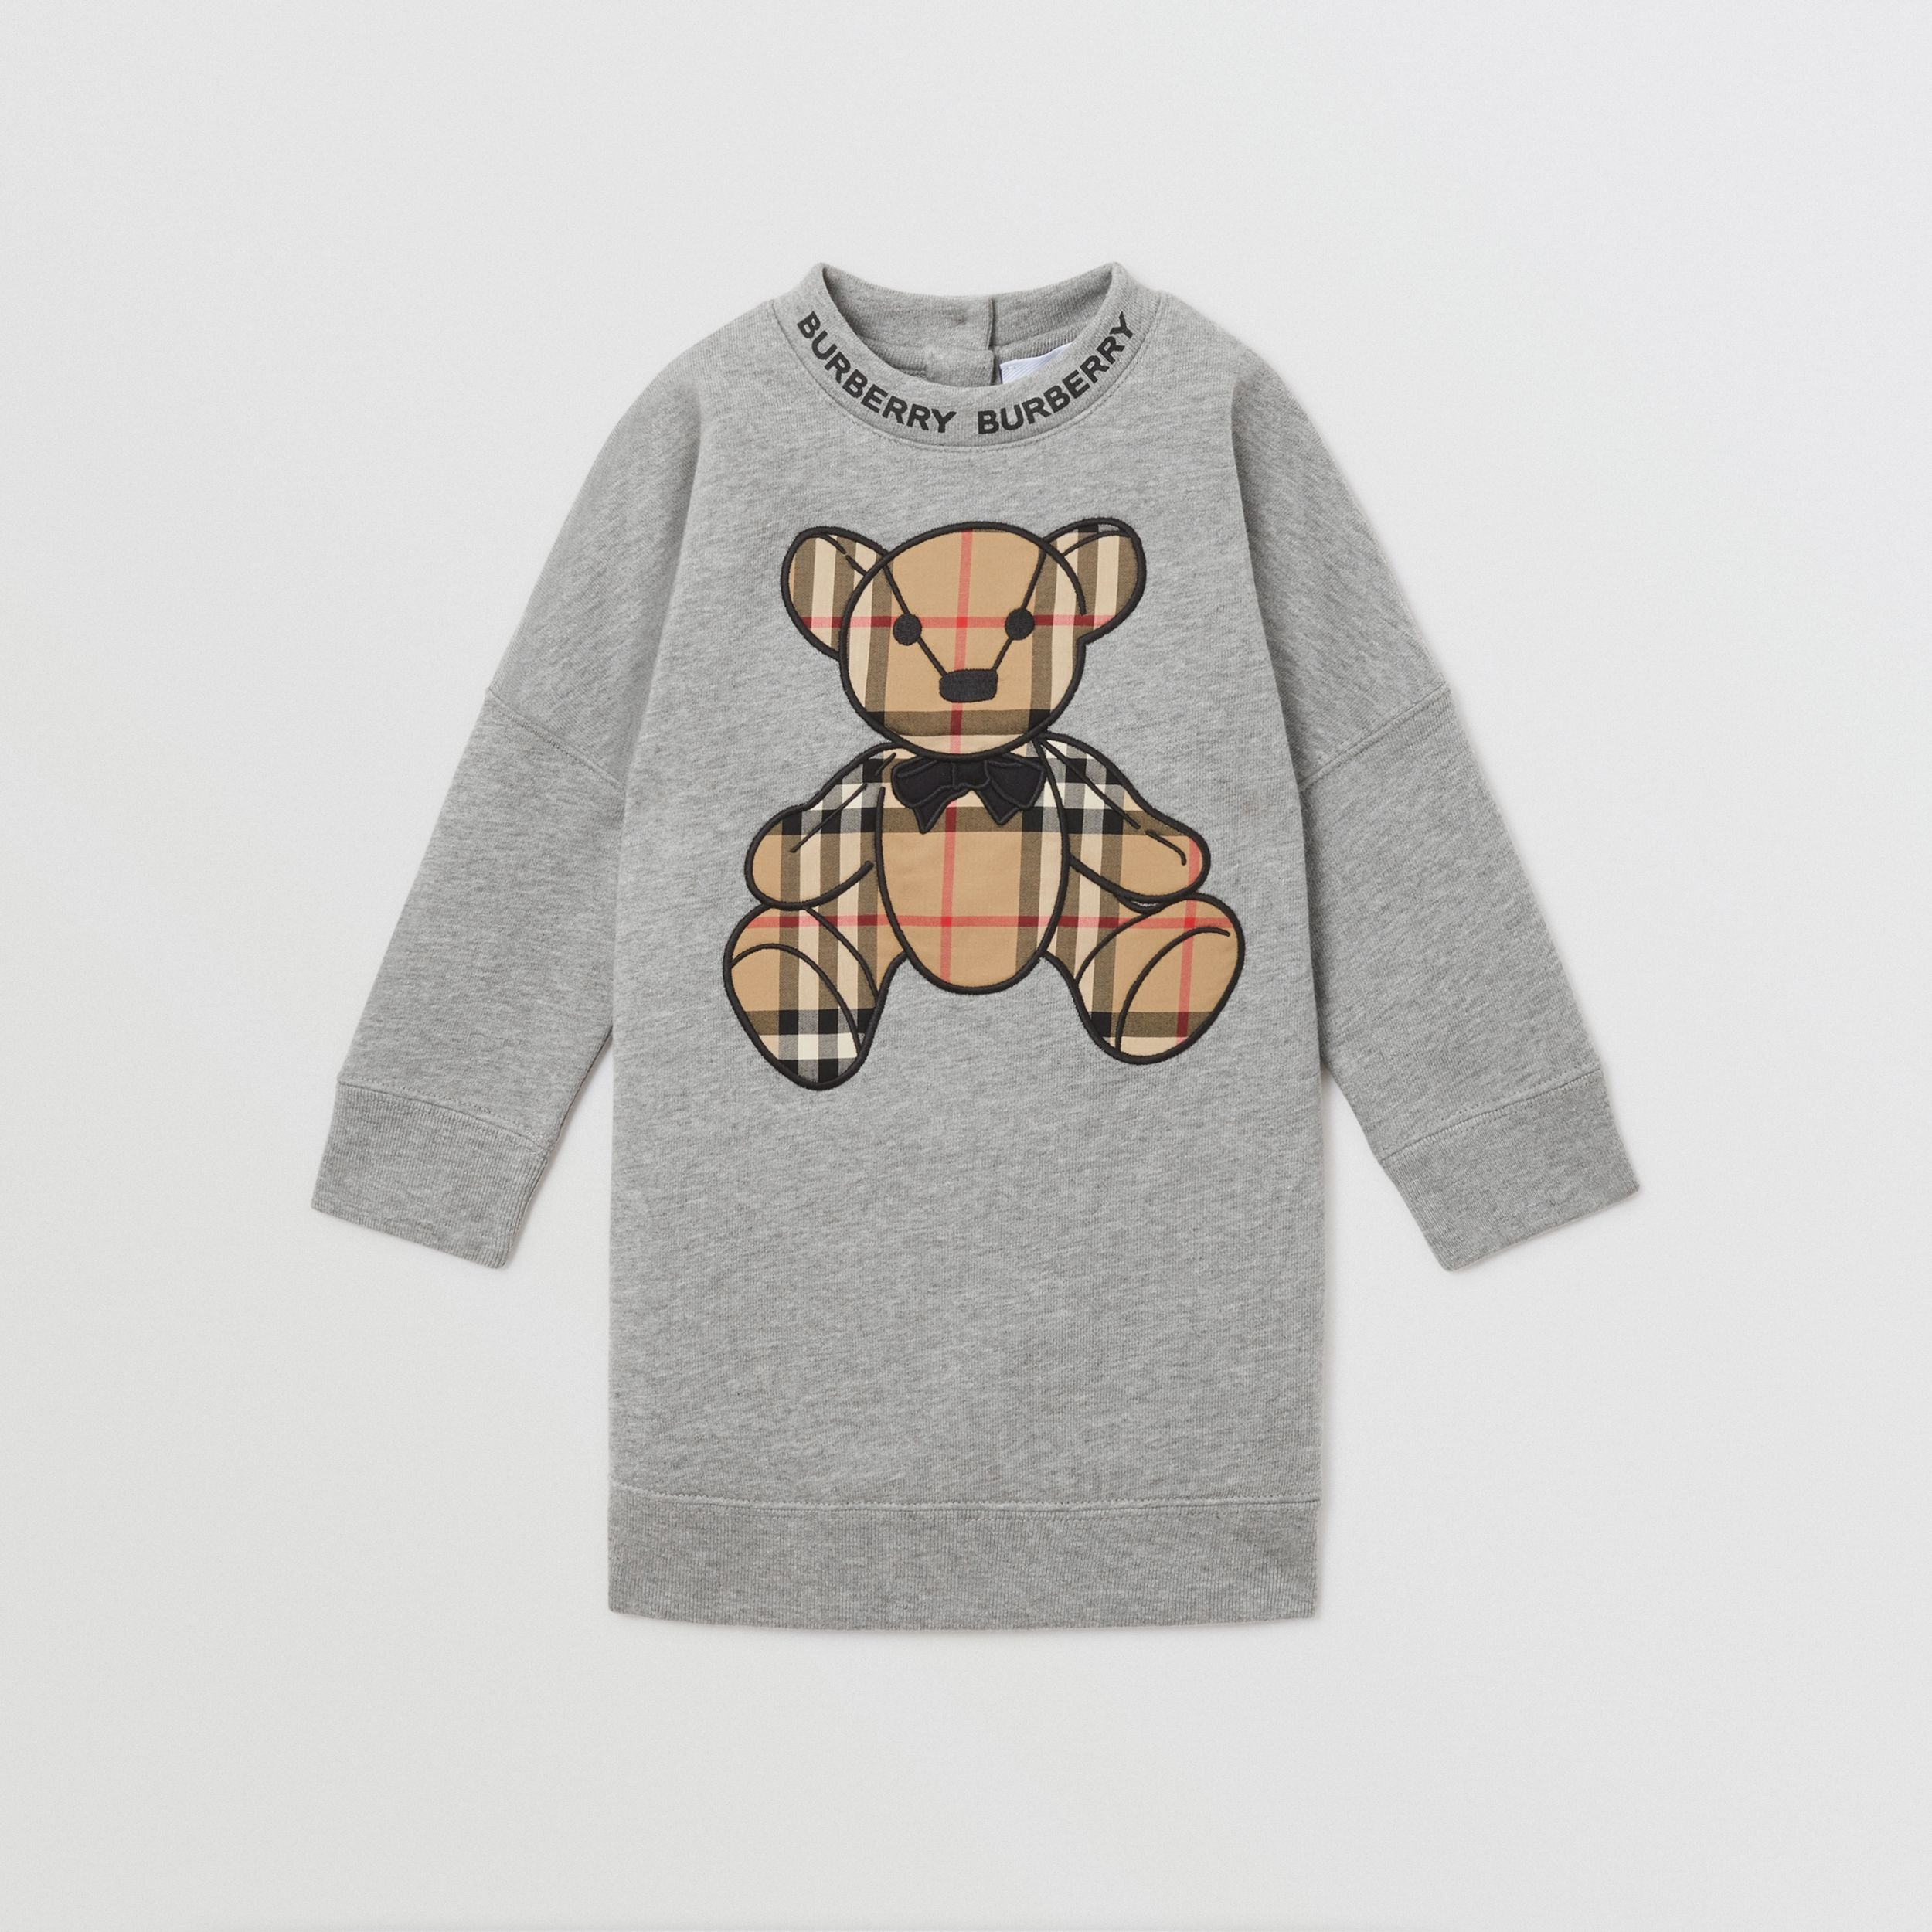 Thomas Bear Appliqué Cotton Sweater Dress in Grey Melange - Children | Burberry - 1